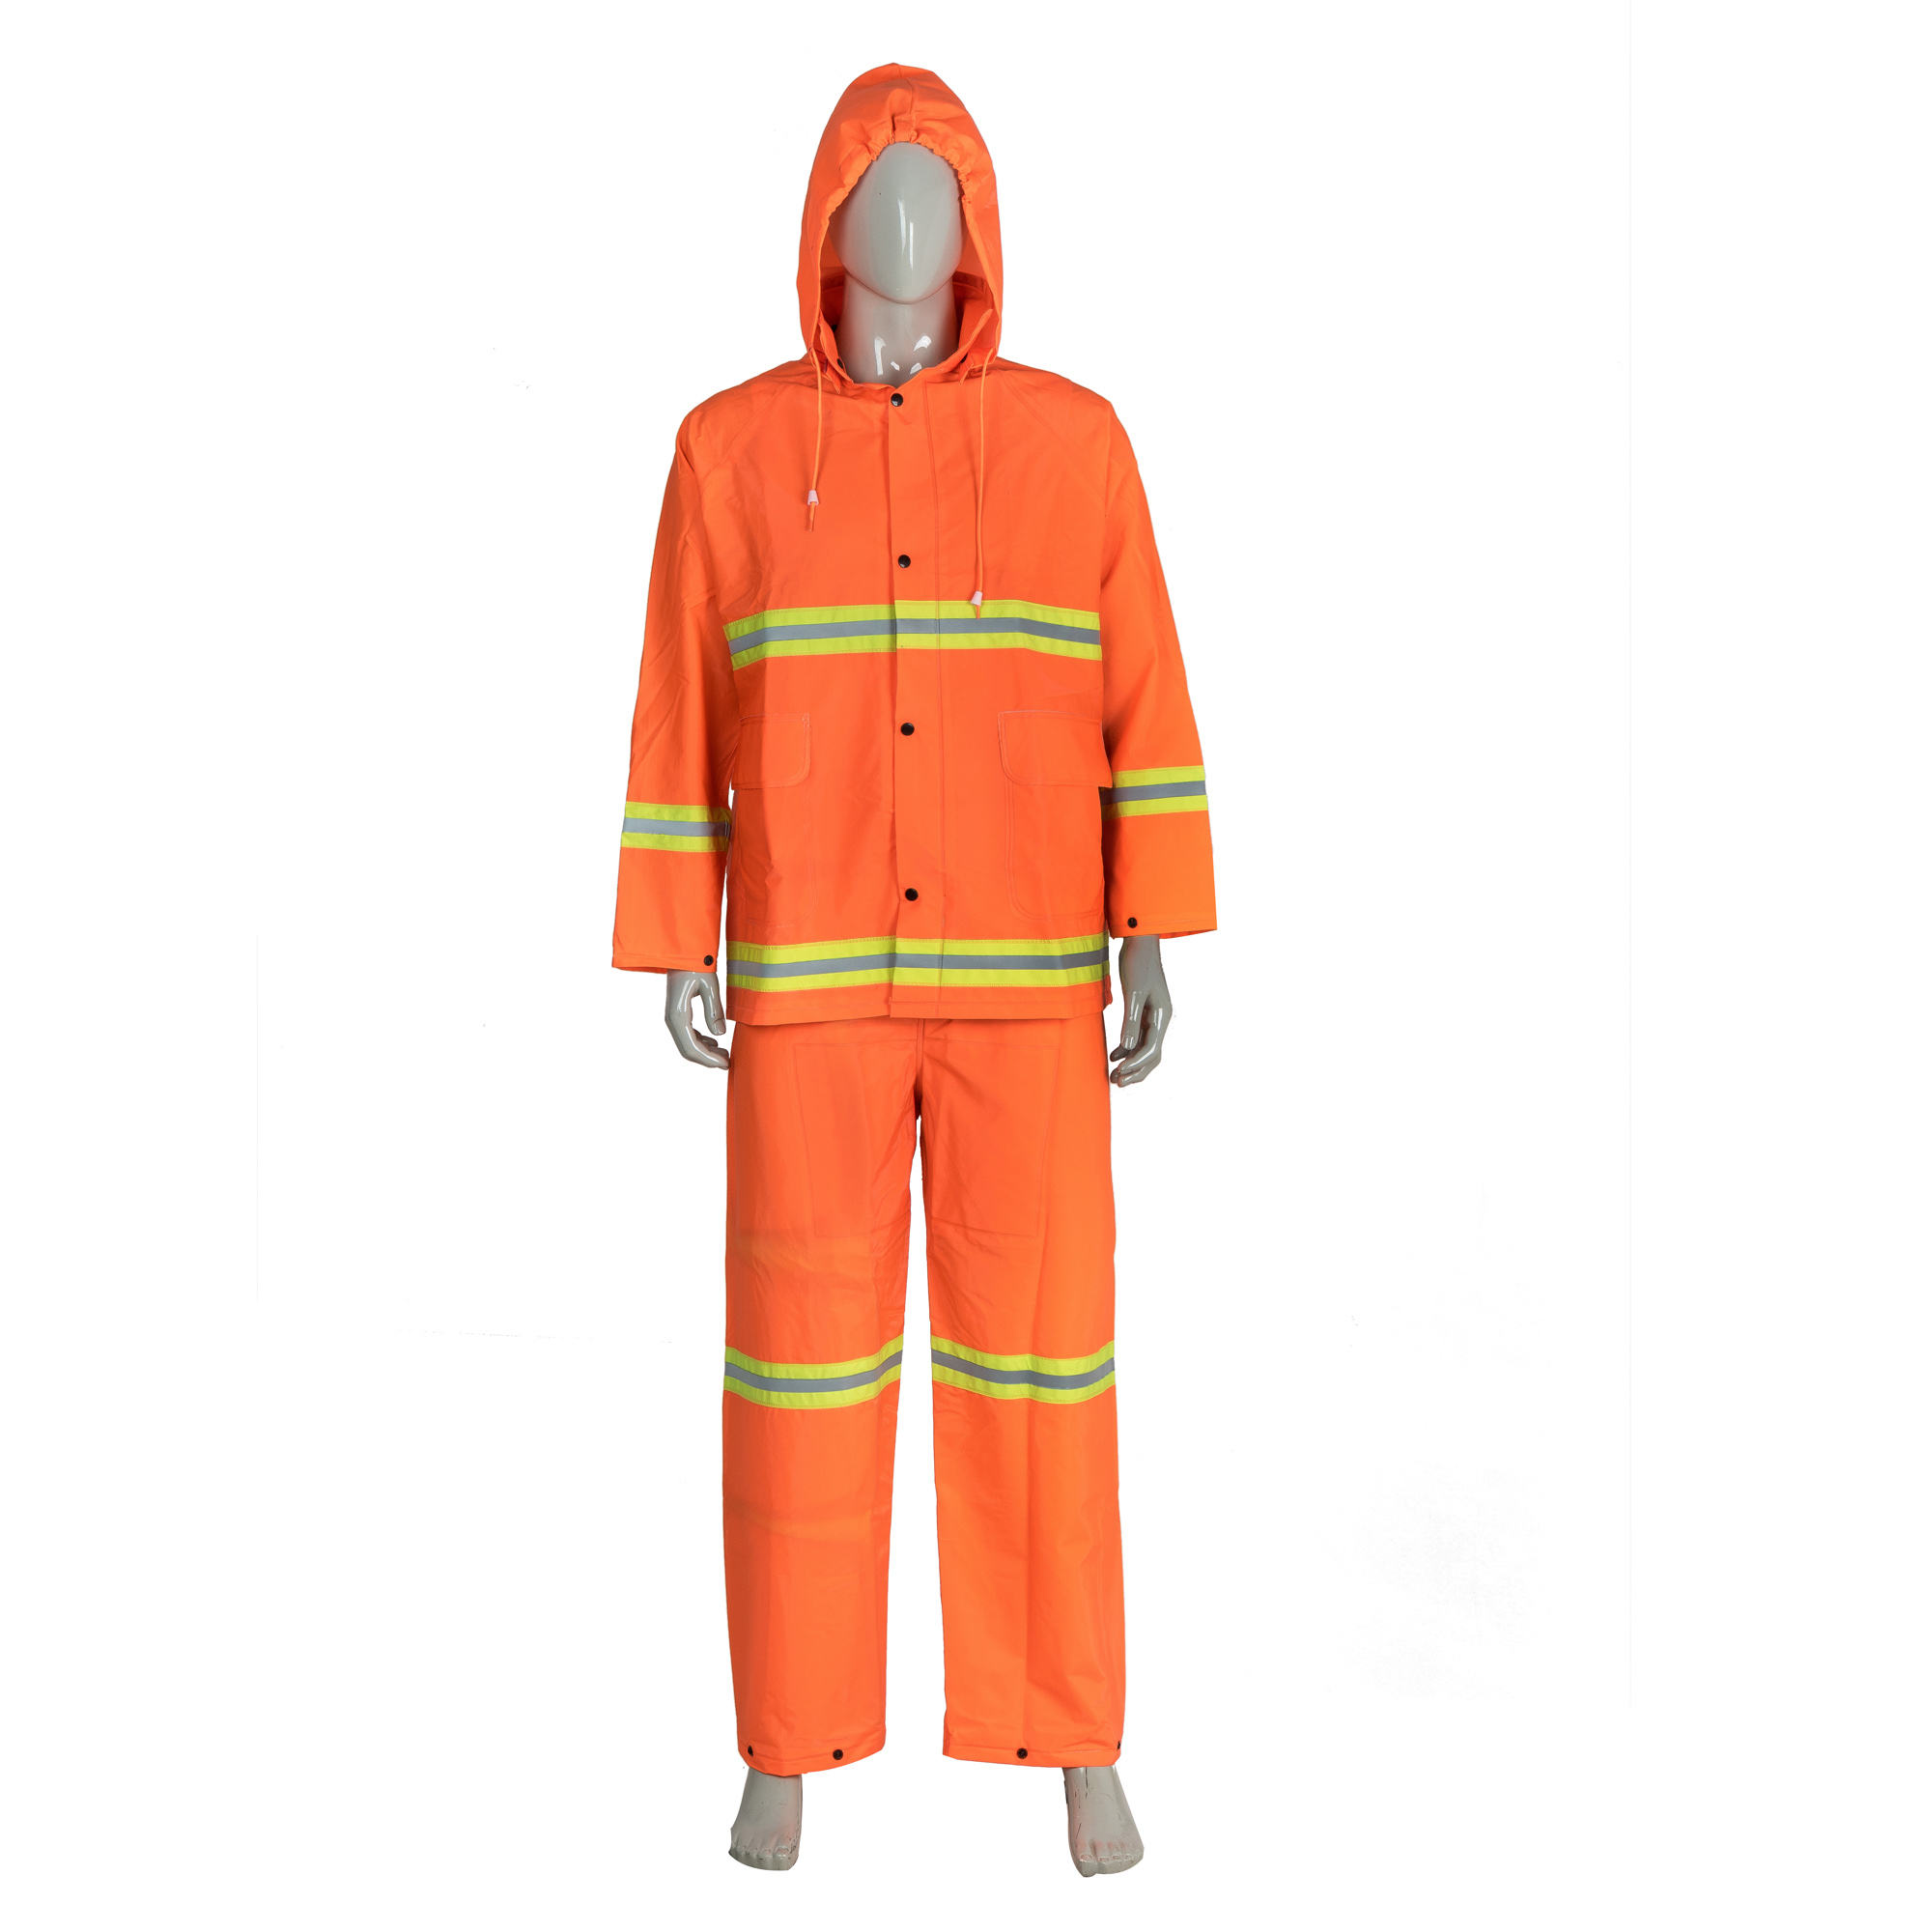 High Quality Wholesale Reflective Safety Clothing High Vision Heavy Duty Rainsuit